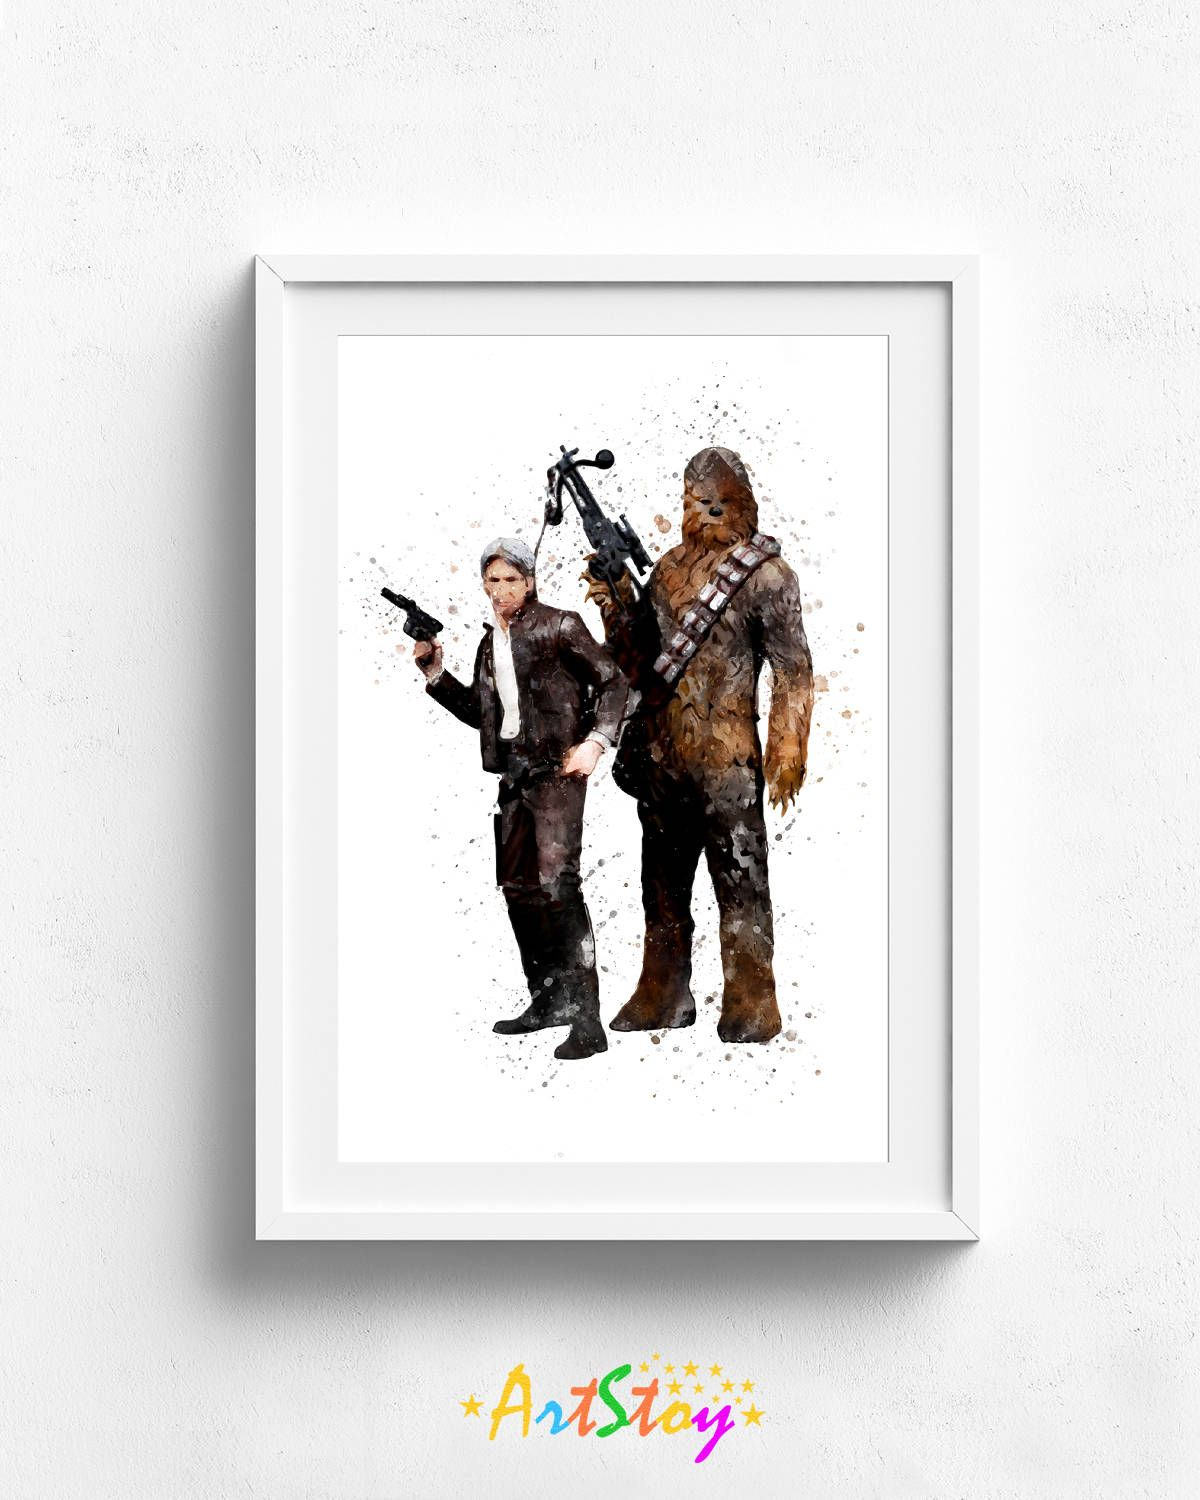 3 00 Han Solo Art Print Star Wars Science Fiction Han Solo Poster Geekery Ski Fi Poster Wall Art Home Decor Gift For Him Han Solo Art Art Prints Art